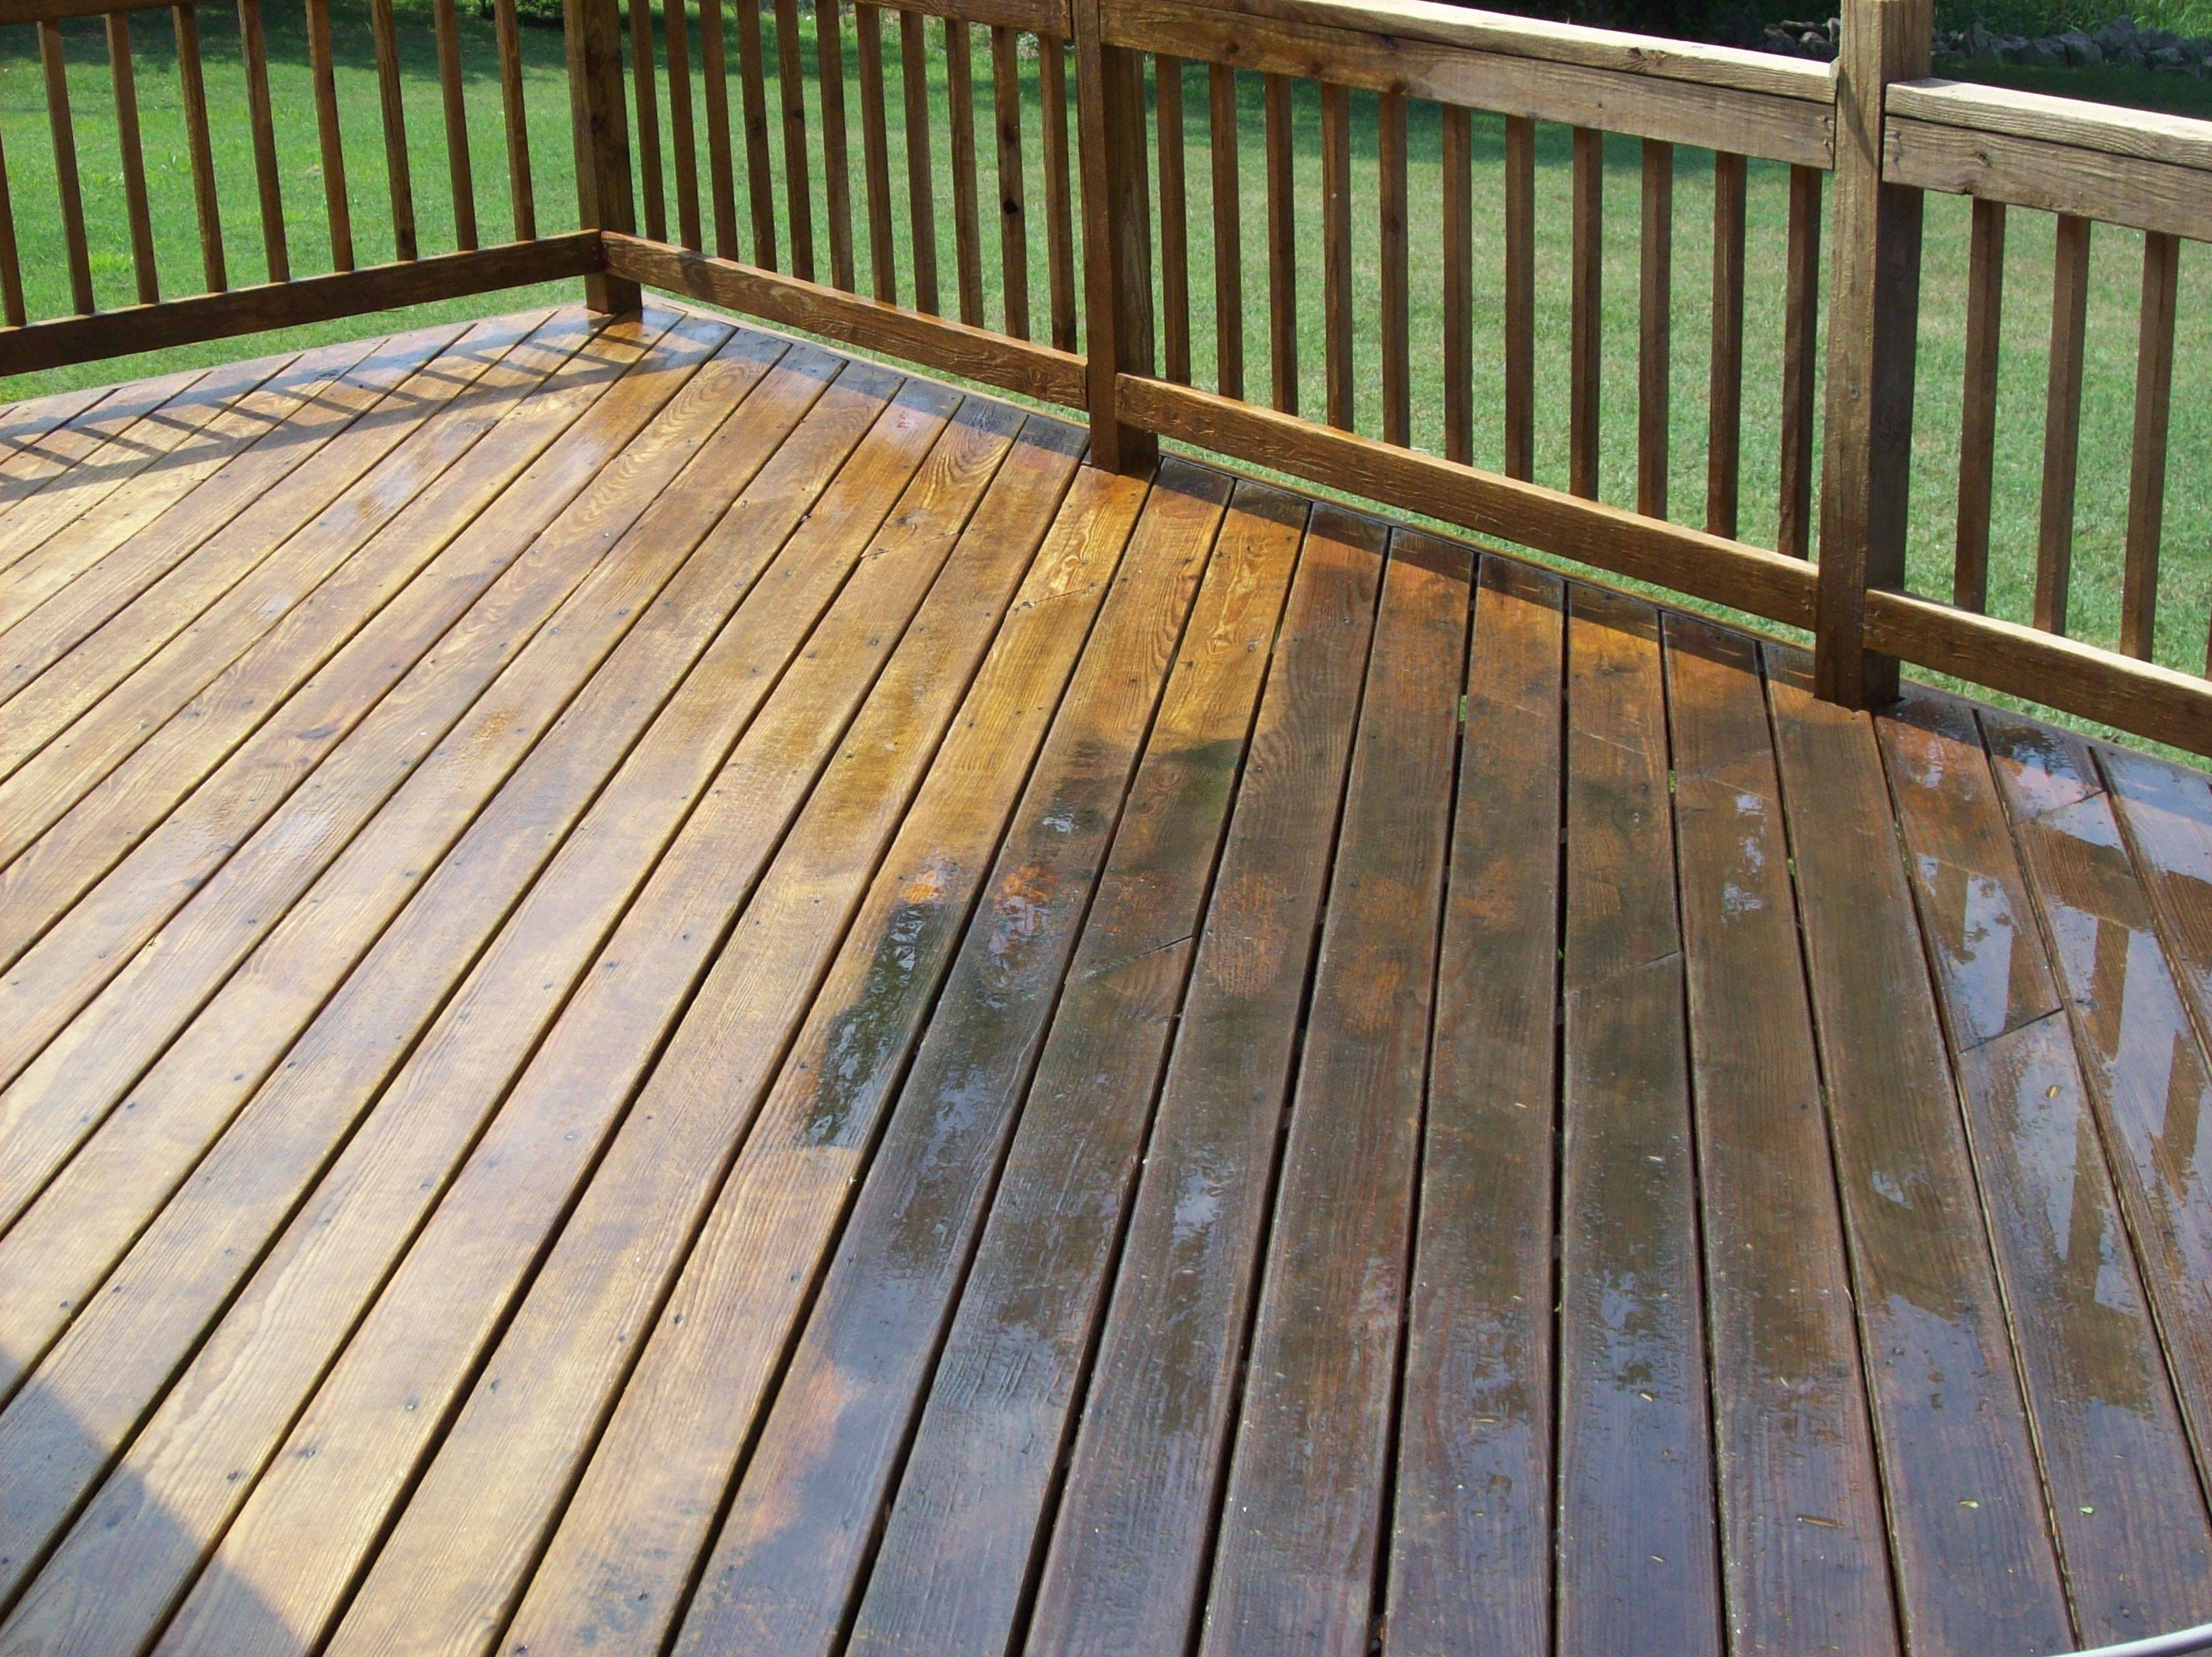 Deck Cleaning Seminole Power Wash intended for measurements 2848 X 2134